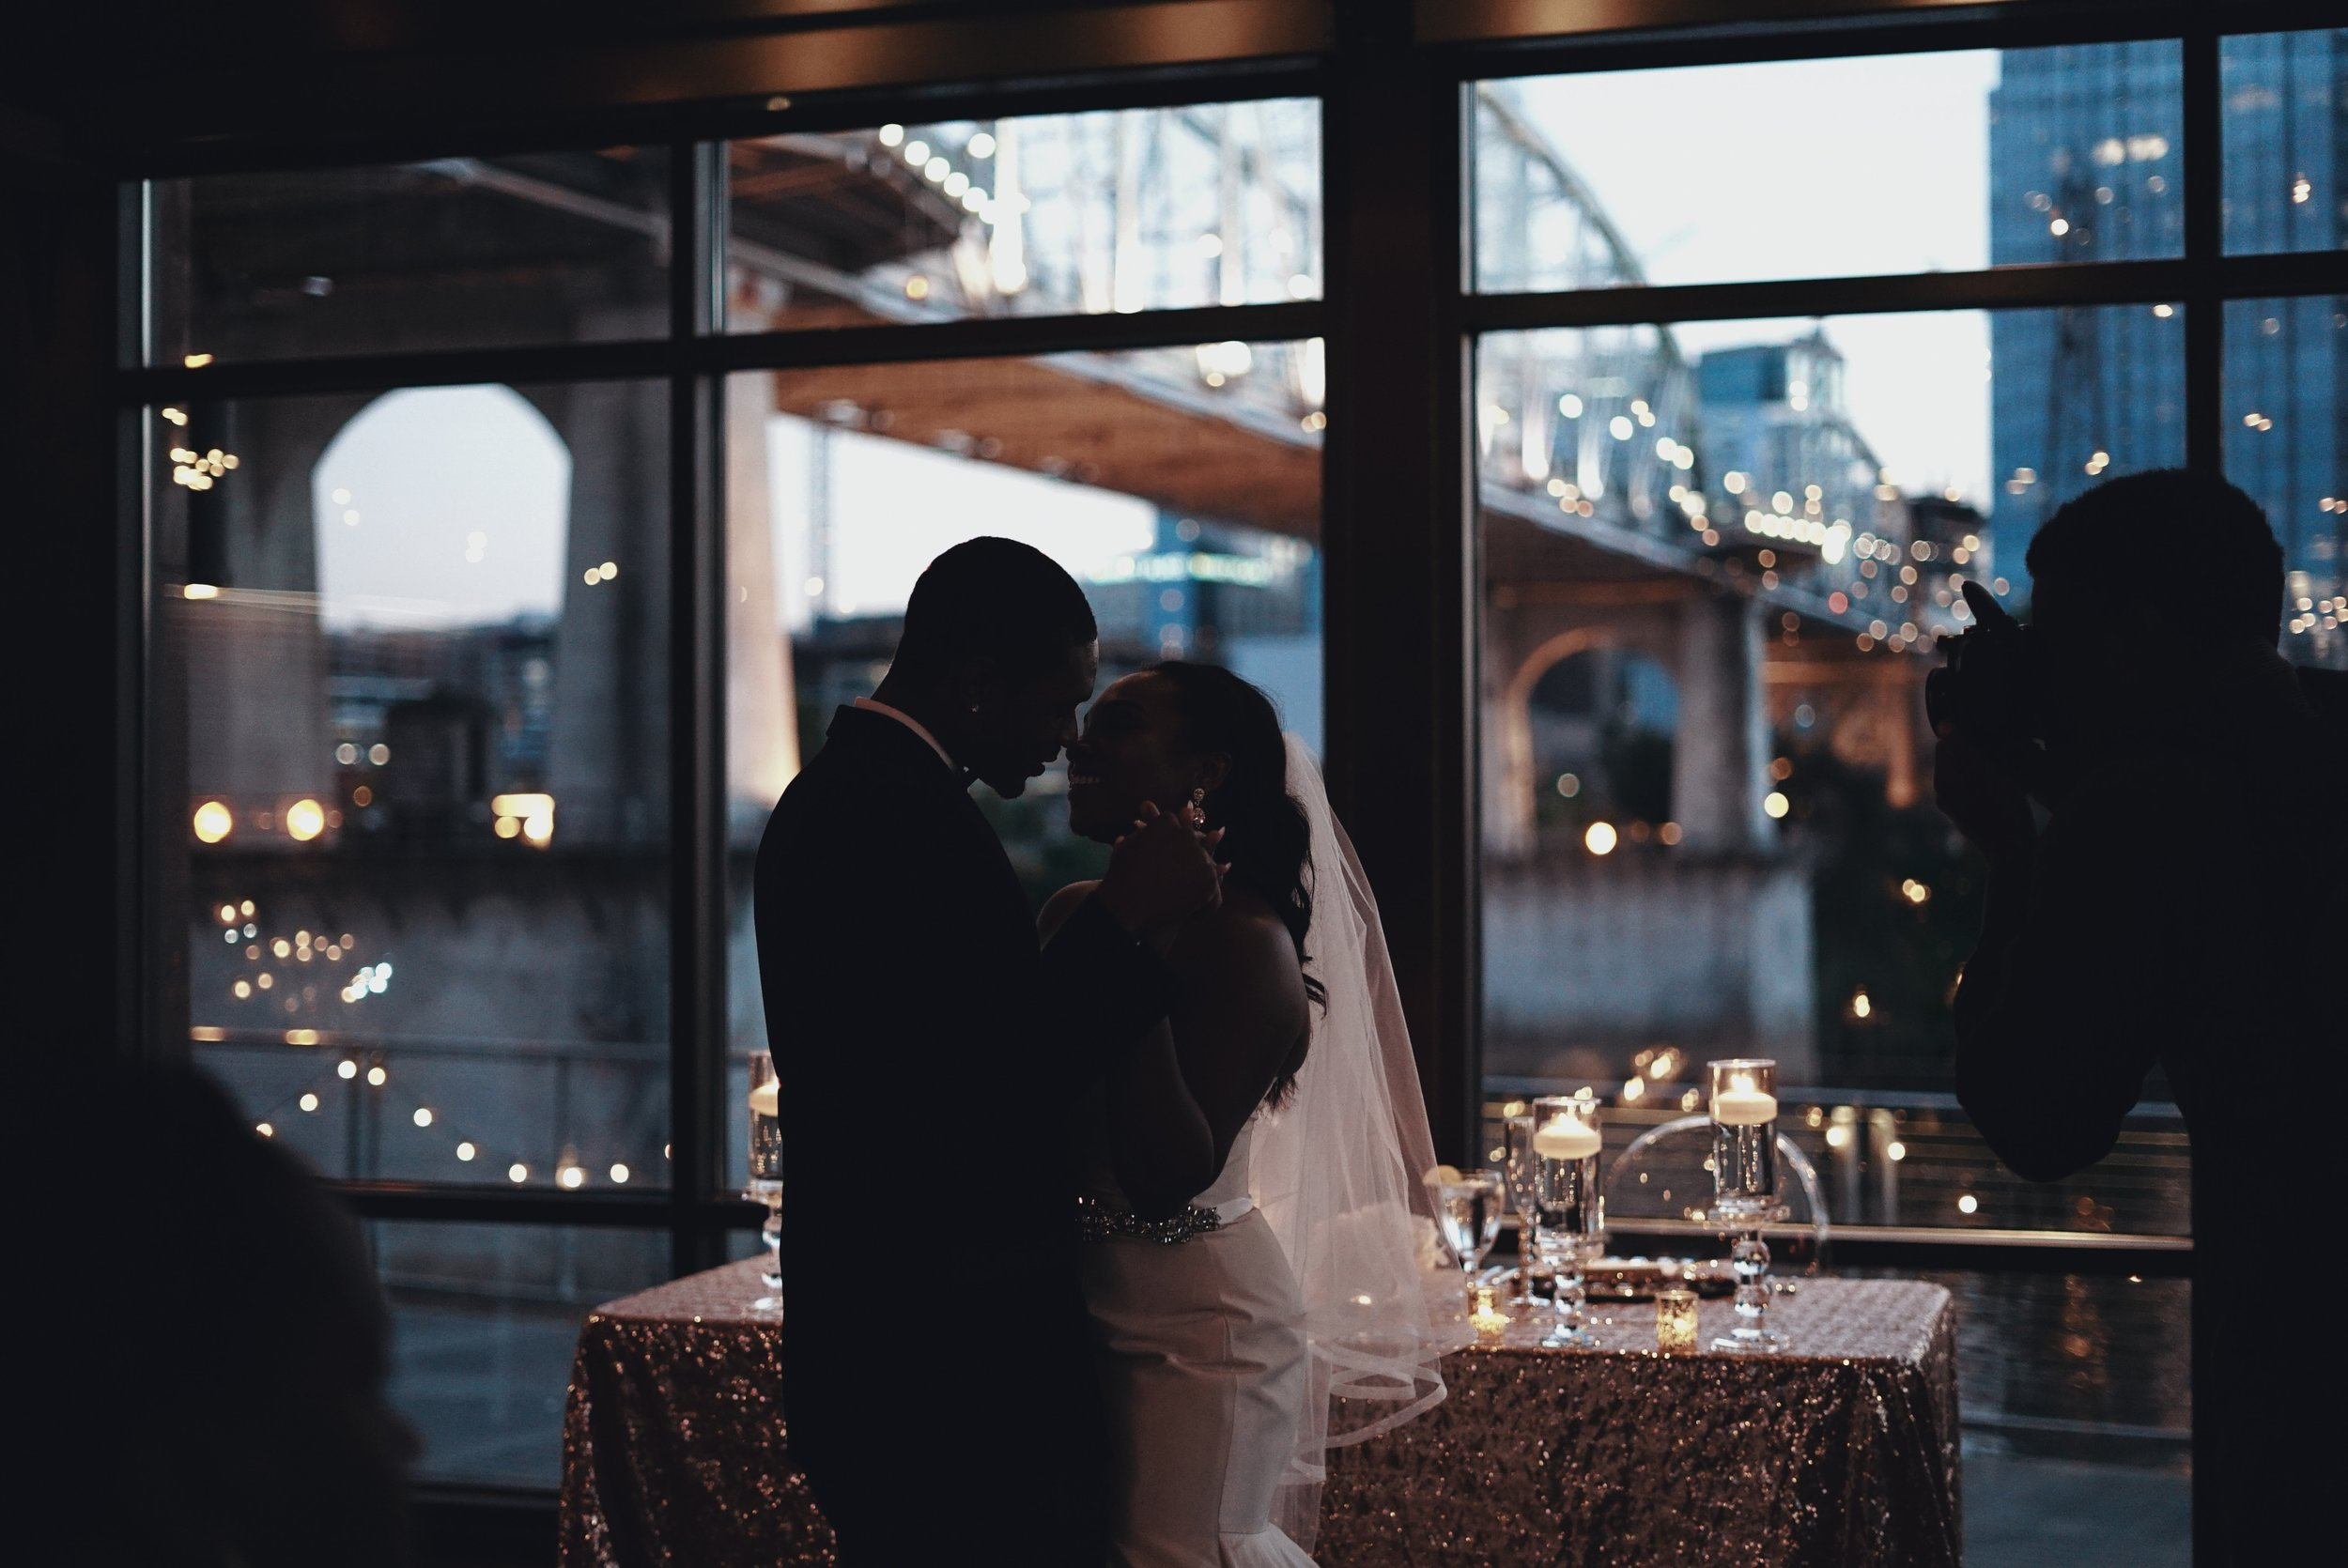 First dance songs - The first time you dance together as husband and wife...